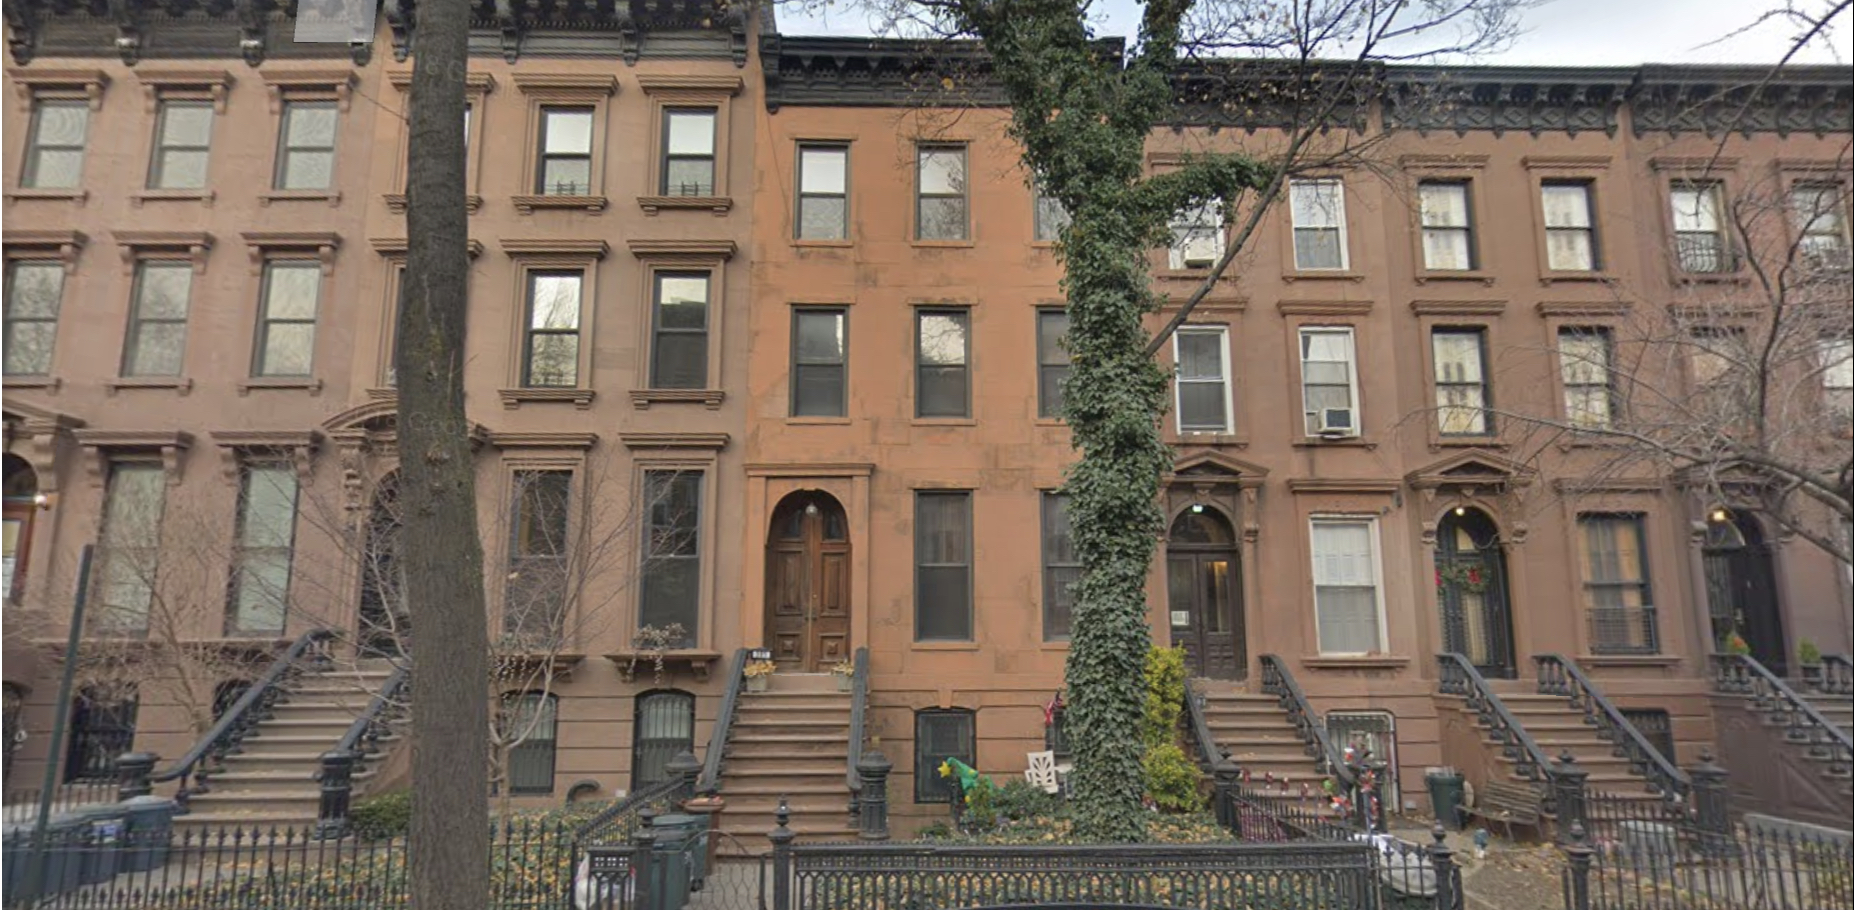 377 Union St. Brooklyn on Google Street View